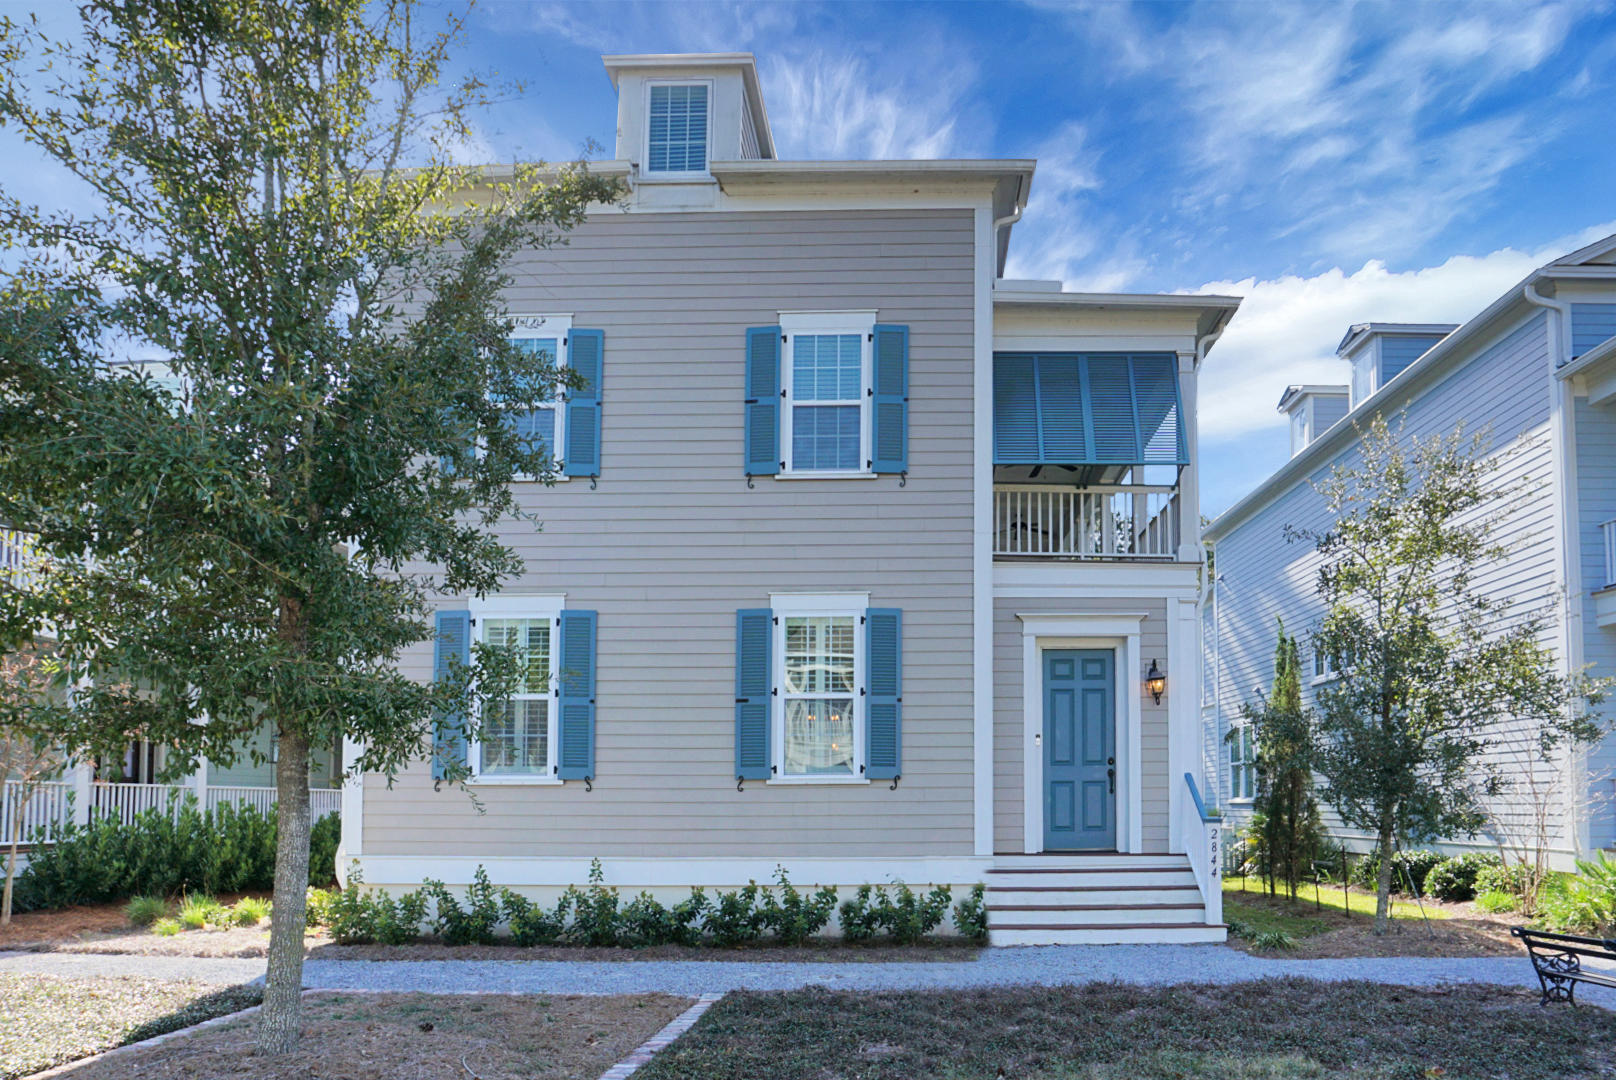 Rivertowne On The Wando Homes For Sale - 2844 Rivertowne, Mount Pleasant, SC - 17